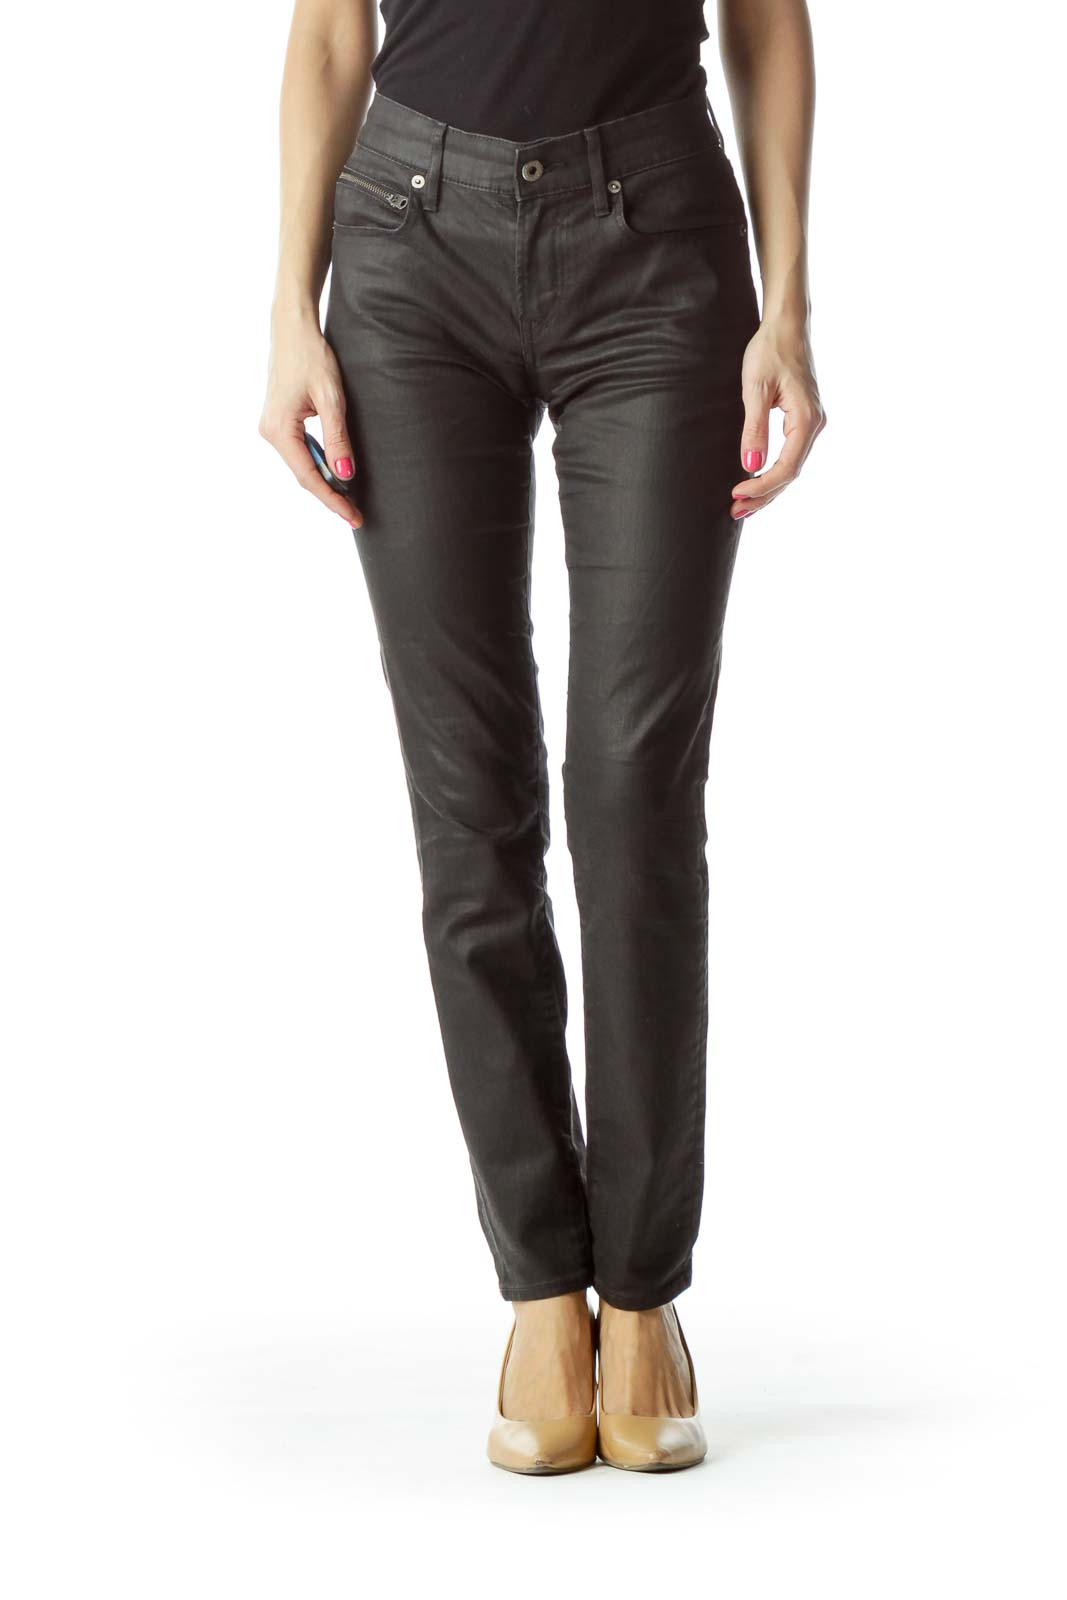 Black Denim Skinny Jeans with Zipper Pockets Front